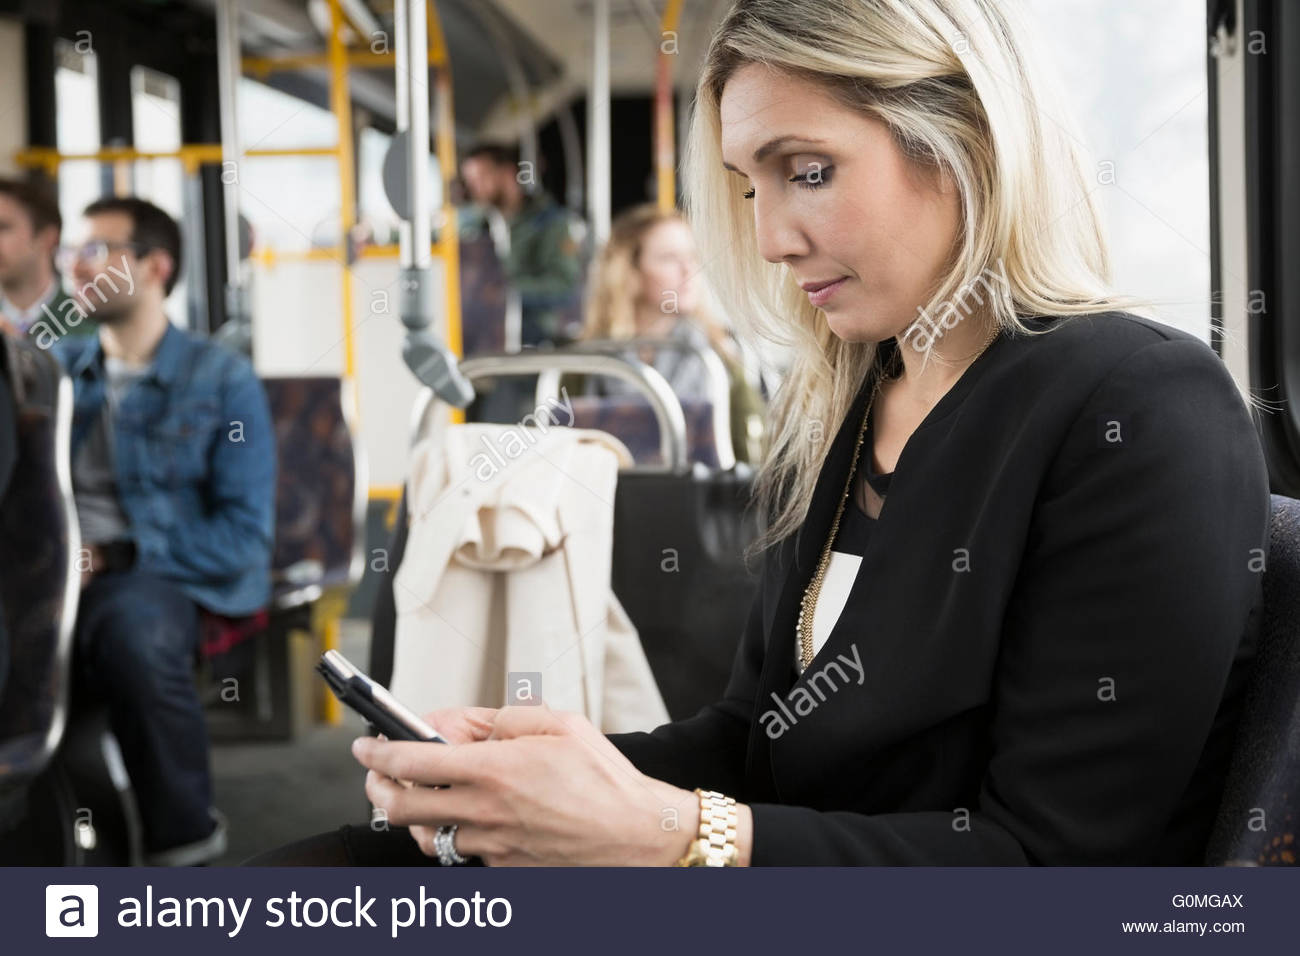 Businesswoman texting with cell phone on bus Photo Stock